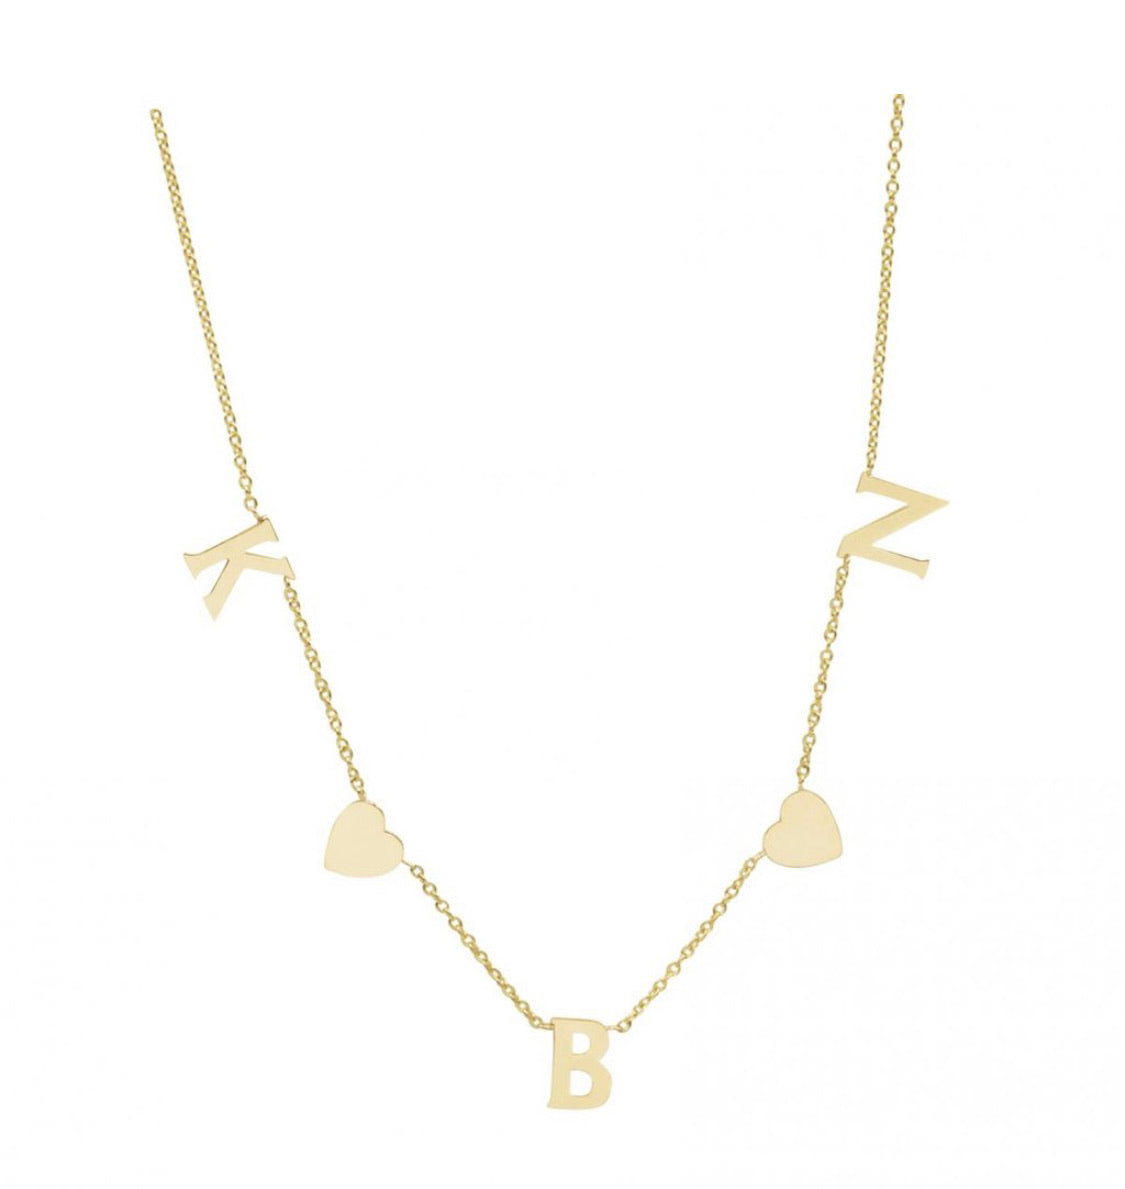 PERSONALIZED HEARTS & INITIALS NECKLACE